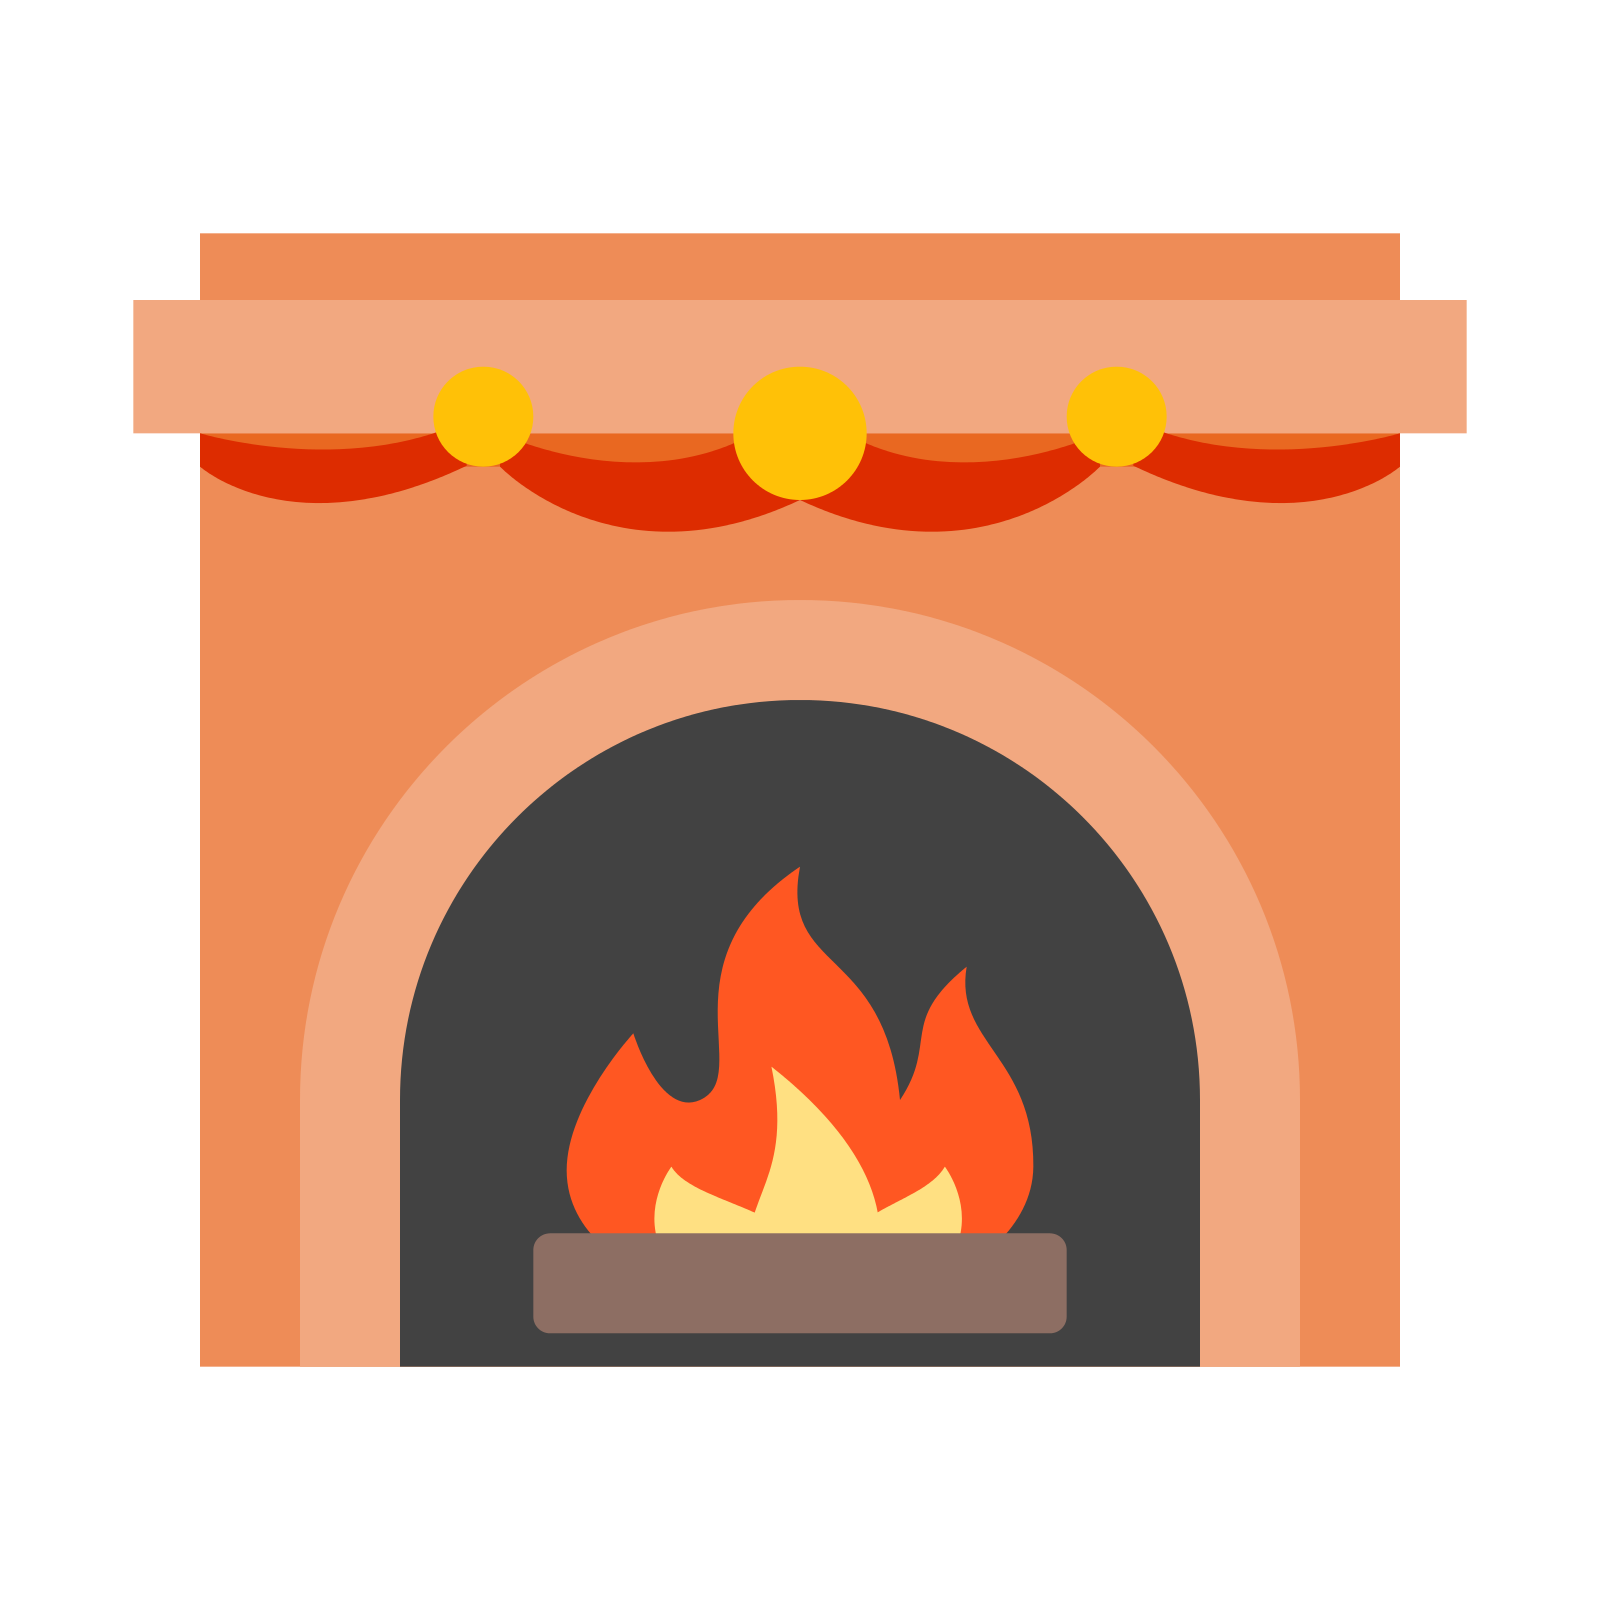 Holydays clipart fireplace Icon Download Free Icon Fireplace